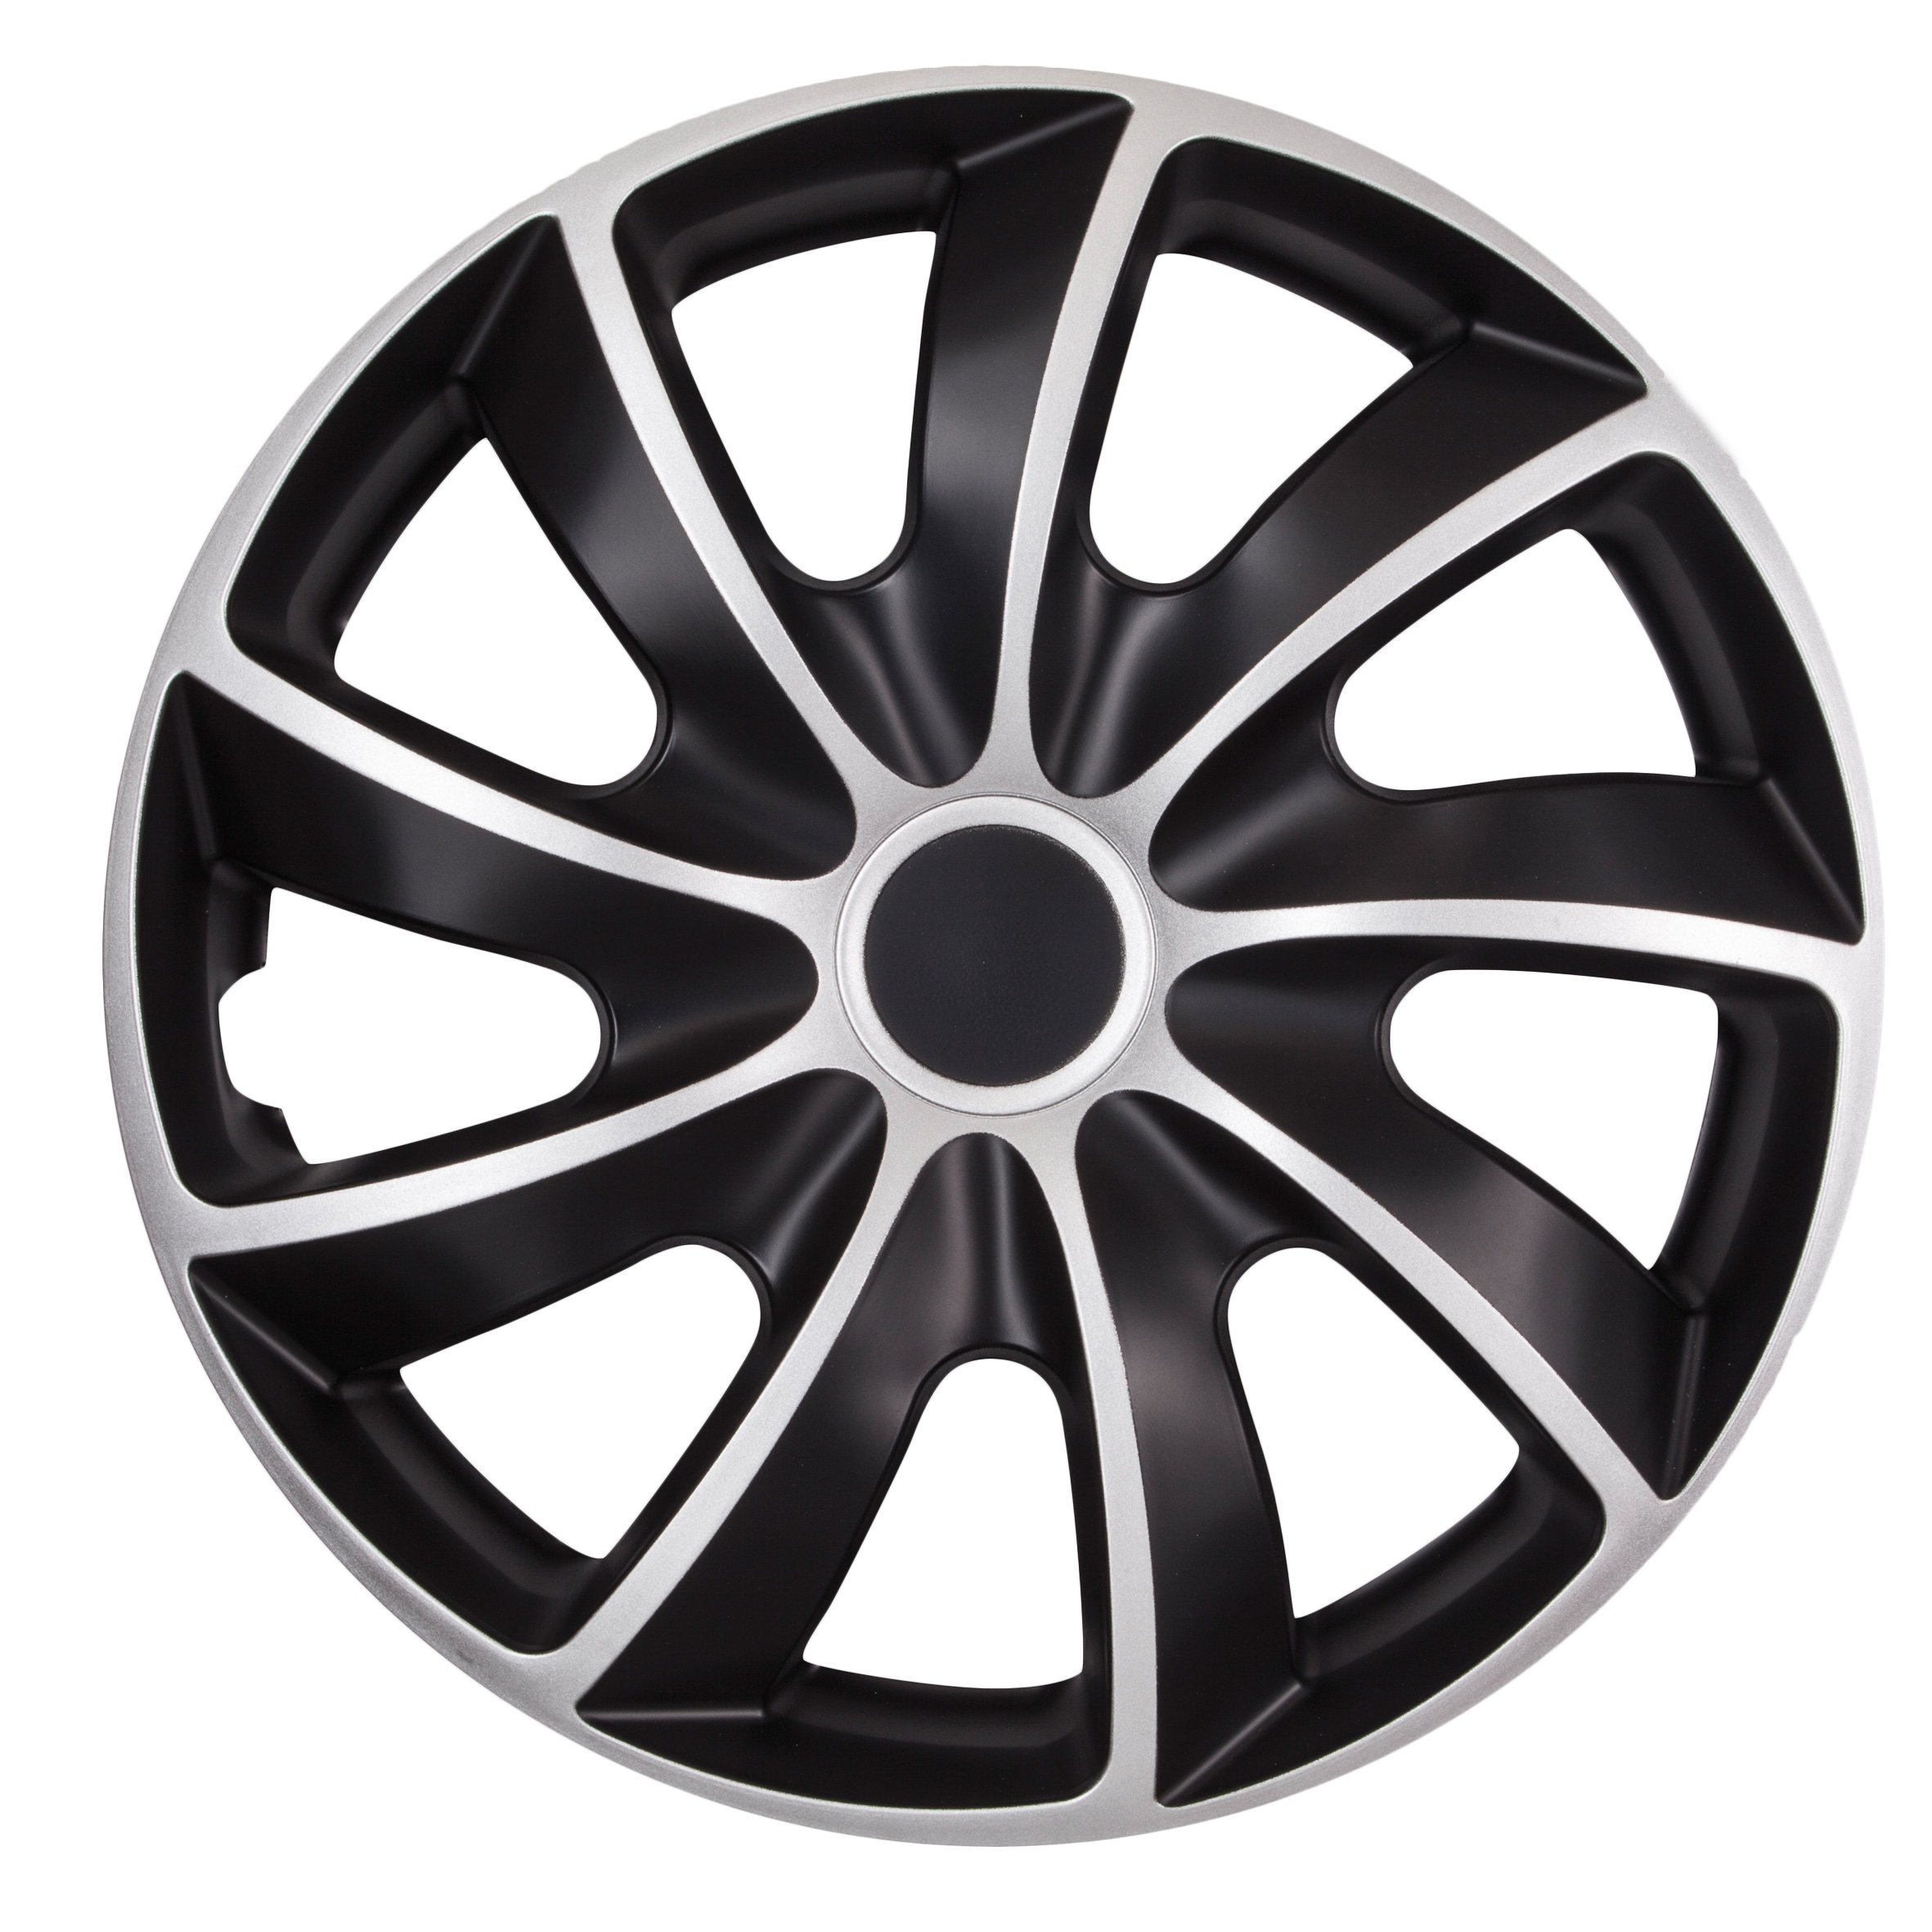 Set of 4 Petex LeMans Pro RB543514 Wheel Trims 14 Inch Double-Lacquered ABS Plastic in Box Black